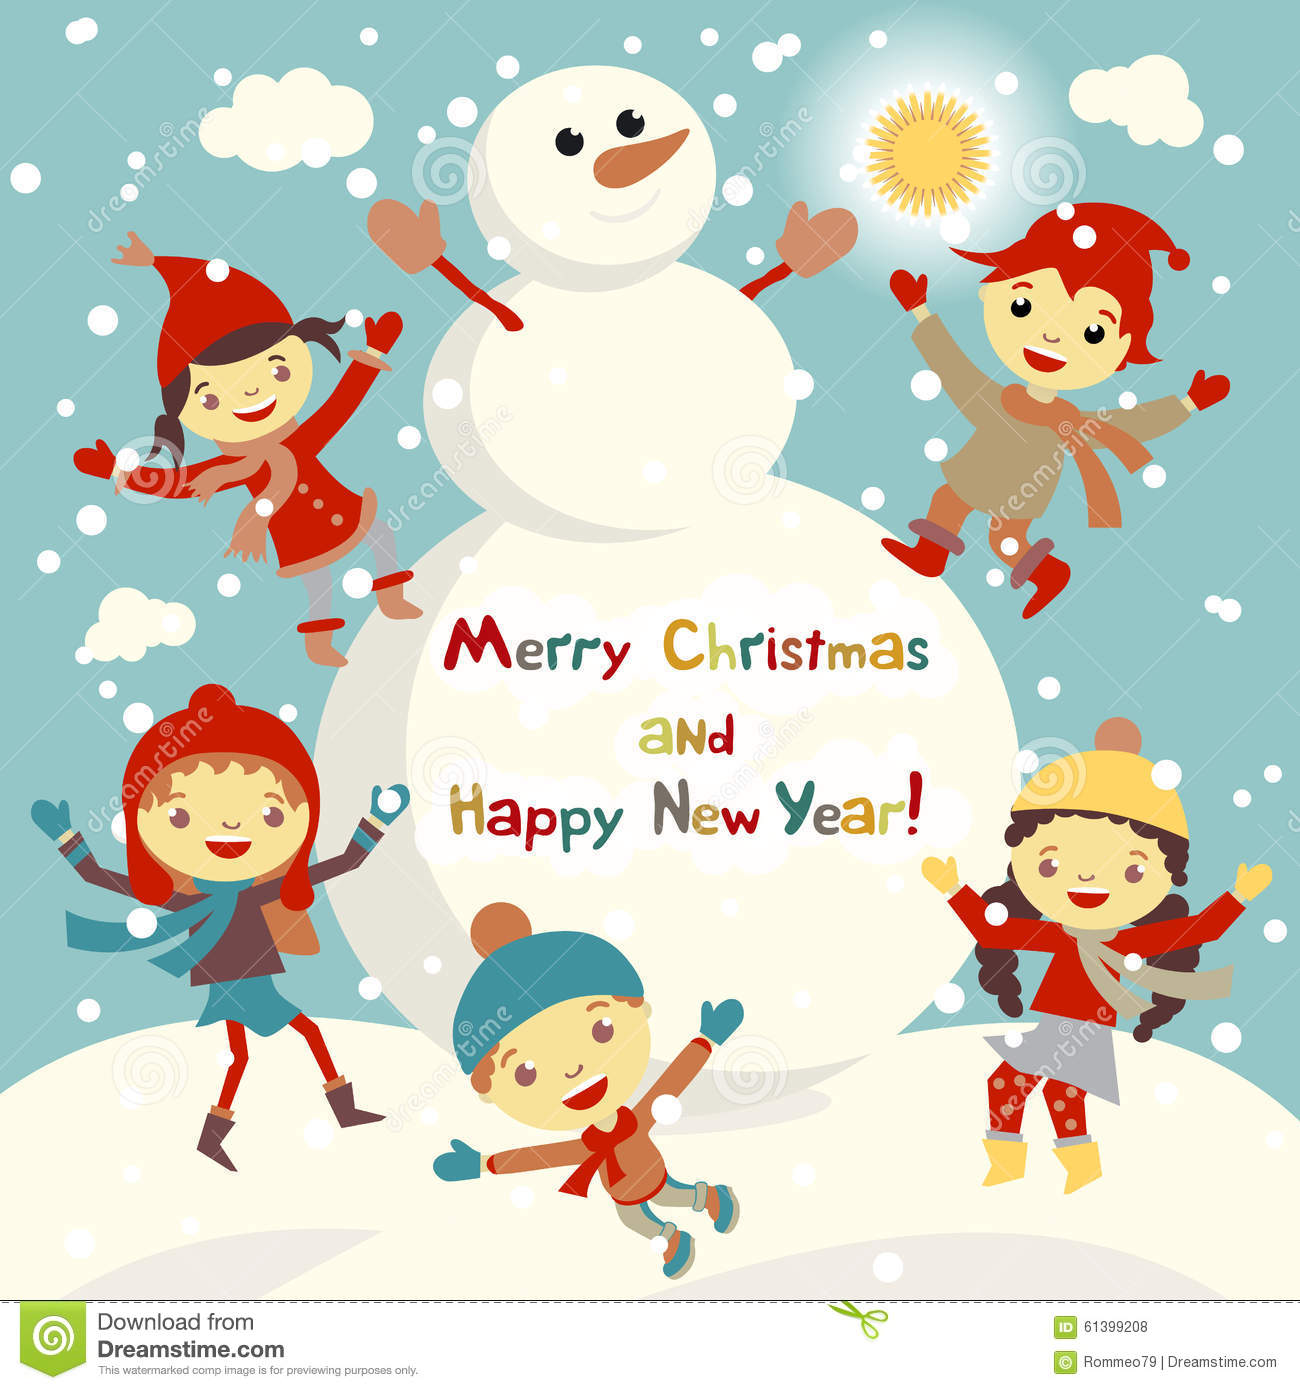 shiny vector christmas background with funny snowman and children